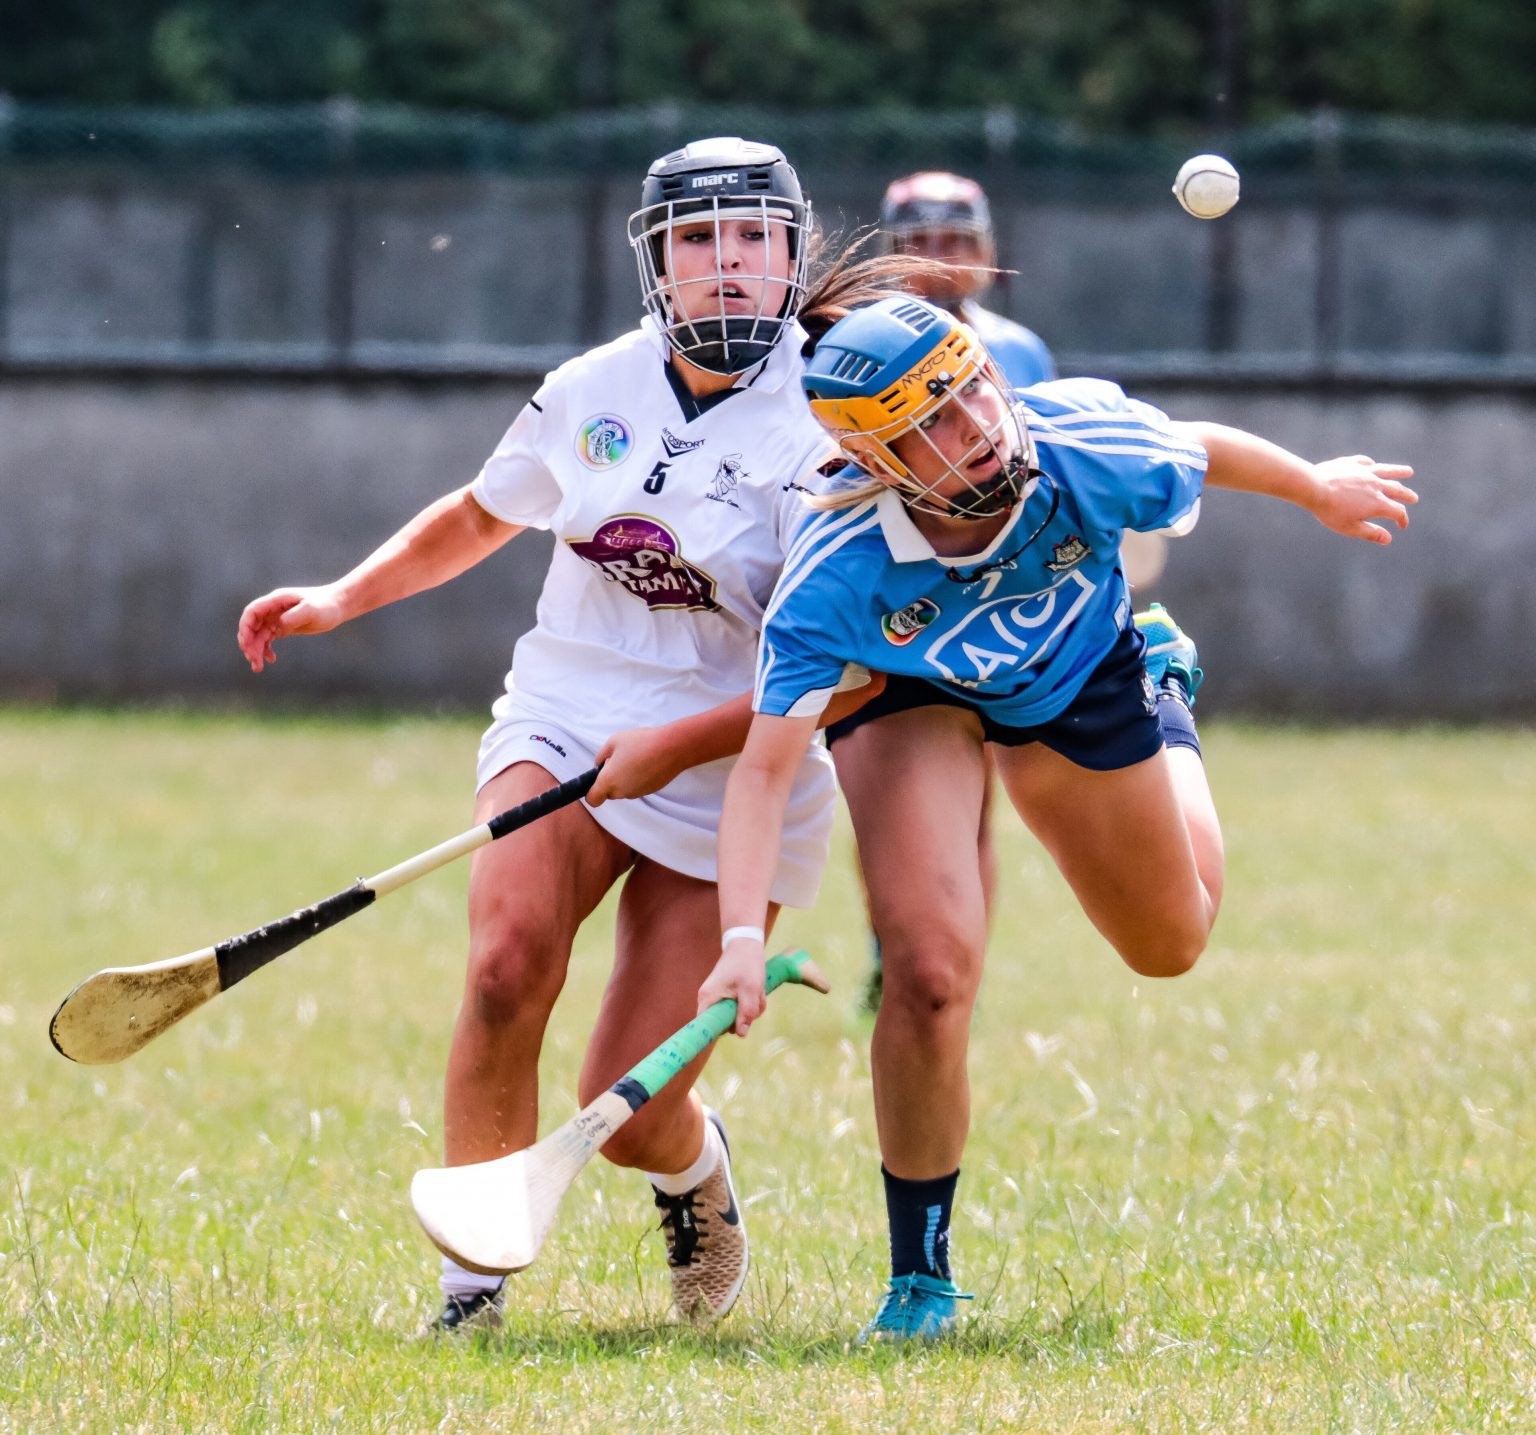 A Kildare Minor Camogie player in a white jersey and a Dublin player in a sky blue jersey battle for the ball